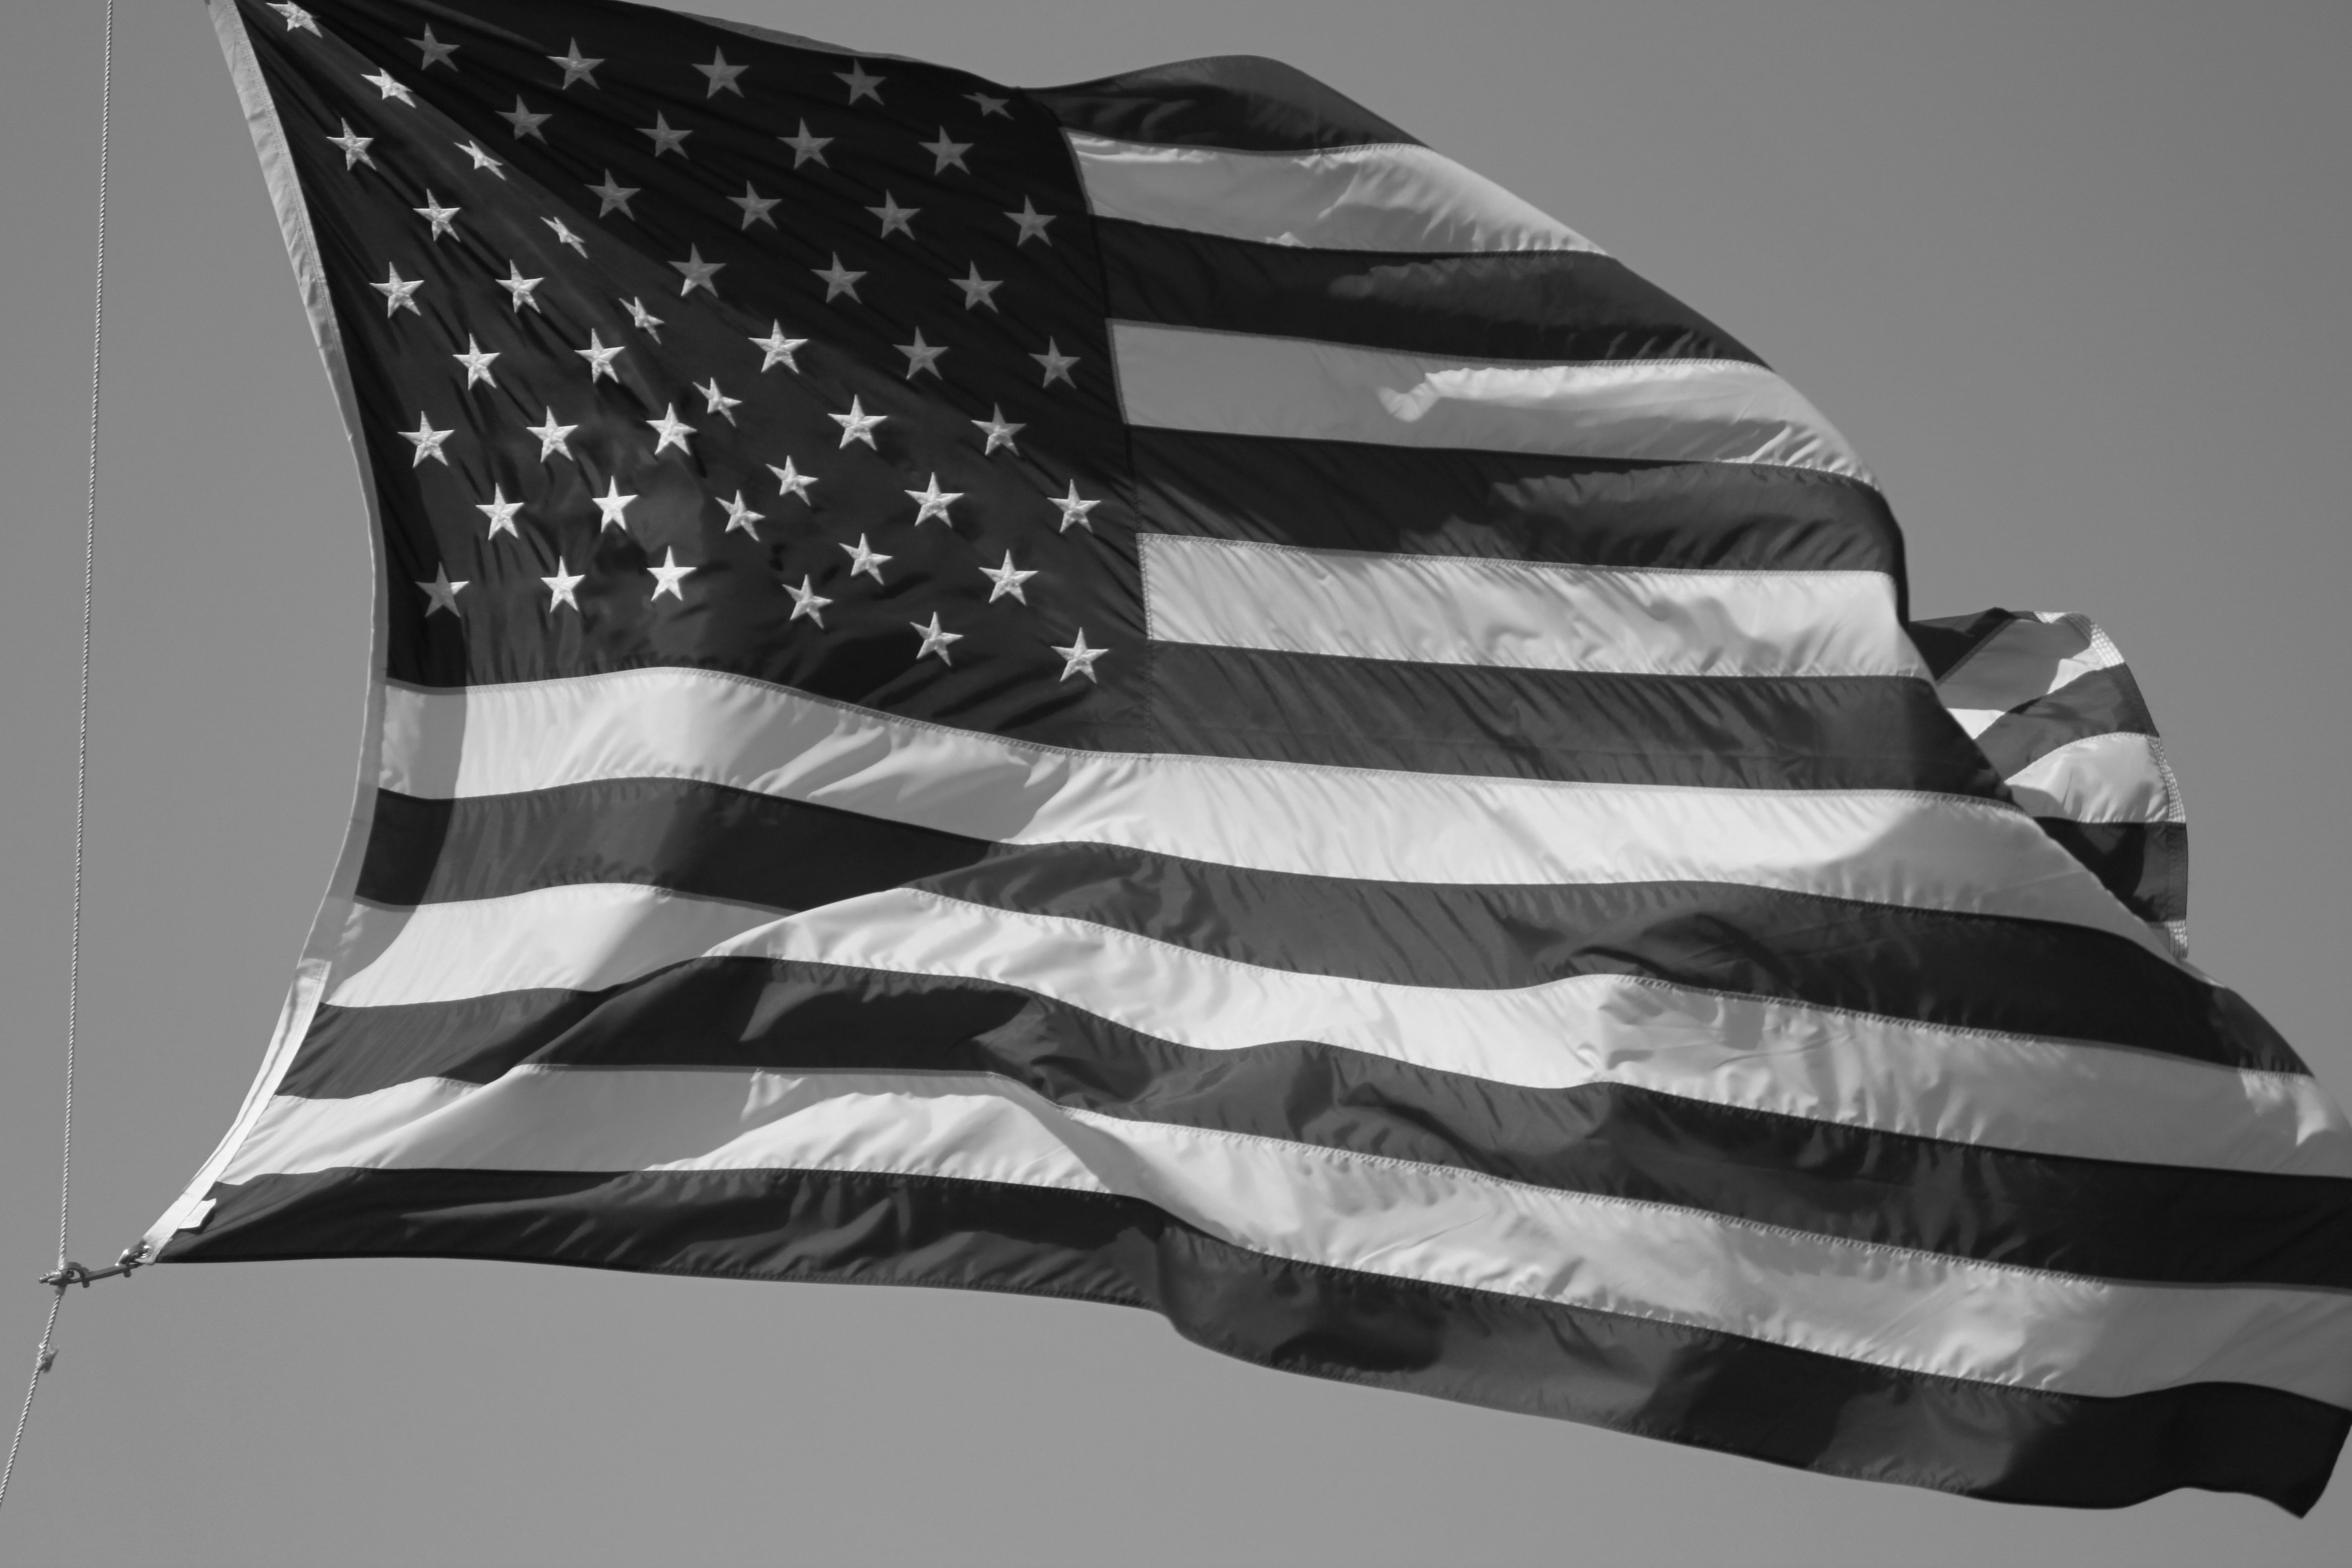 American Flag Black and White Wallpapers - Top Free ...